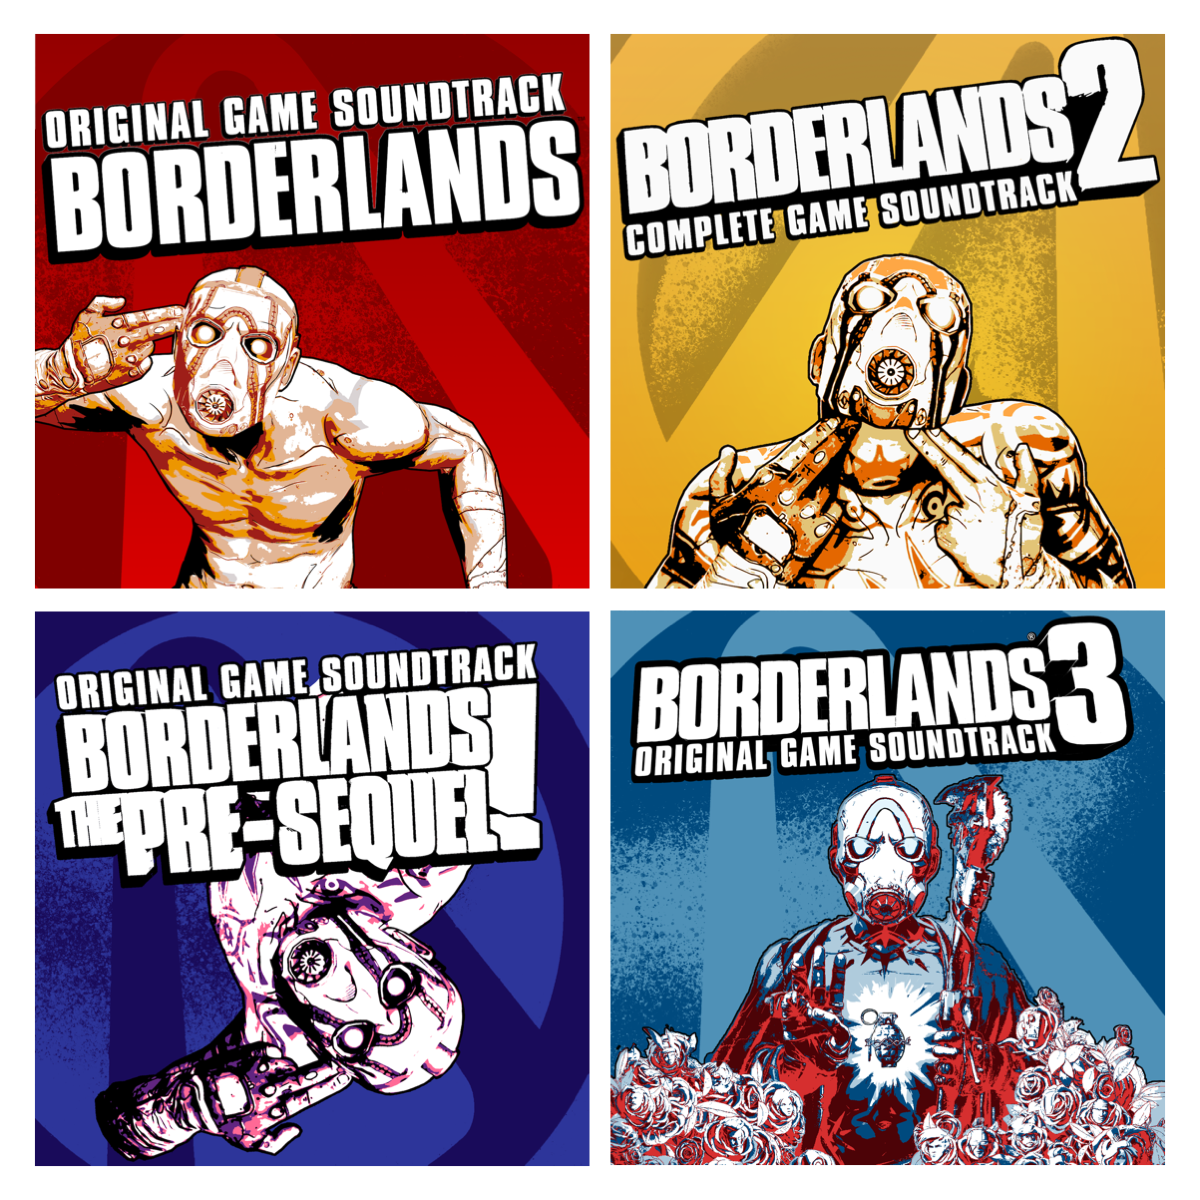 Borderlands soundtracks on digital platforms